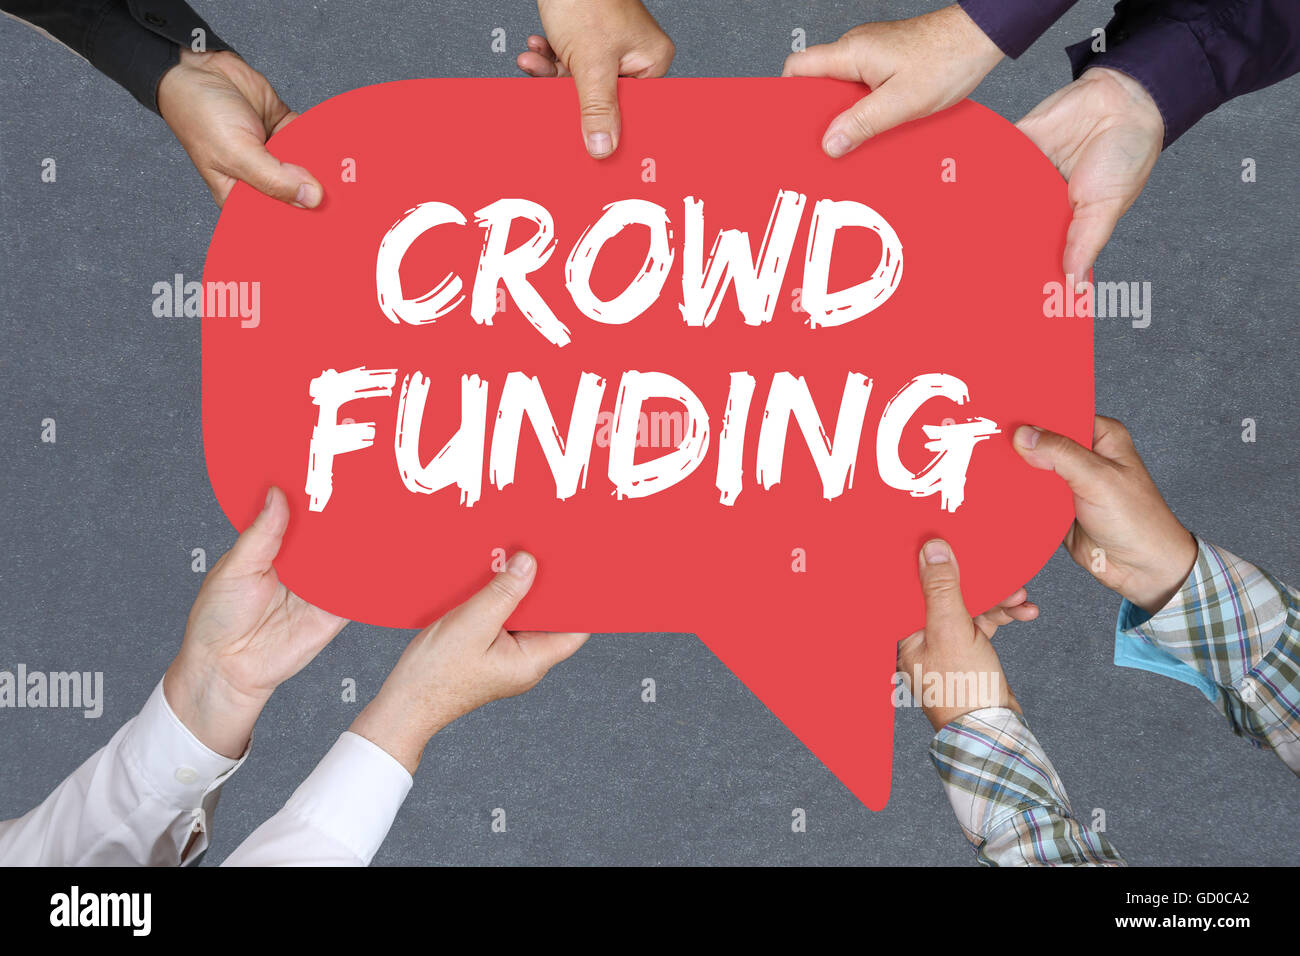 Group of people holding with hands the word crowd funding crowdfunding collecting money online investment internet - Stock Image